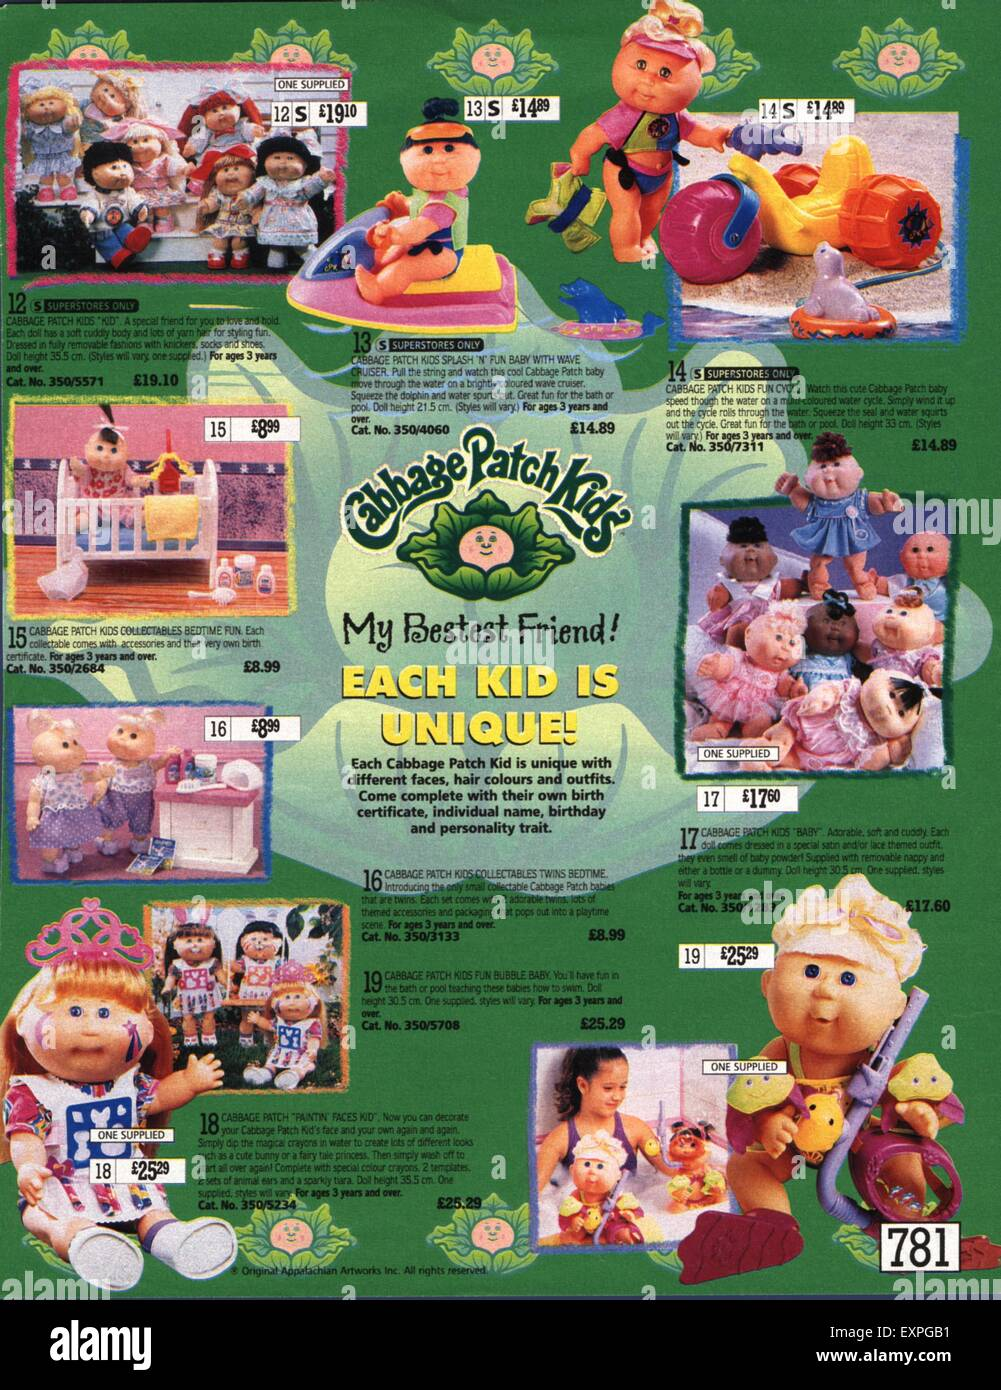 Cabbage Patch Dolls High Resolution Stock Photography and Images - Alamy